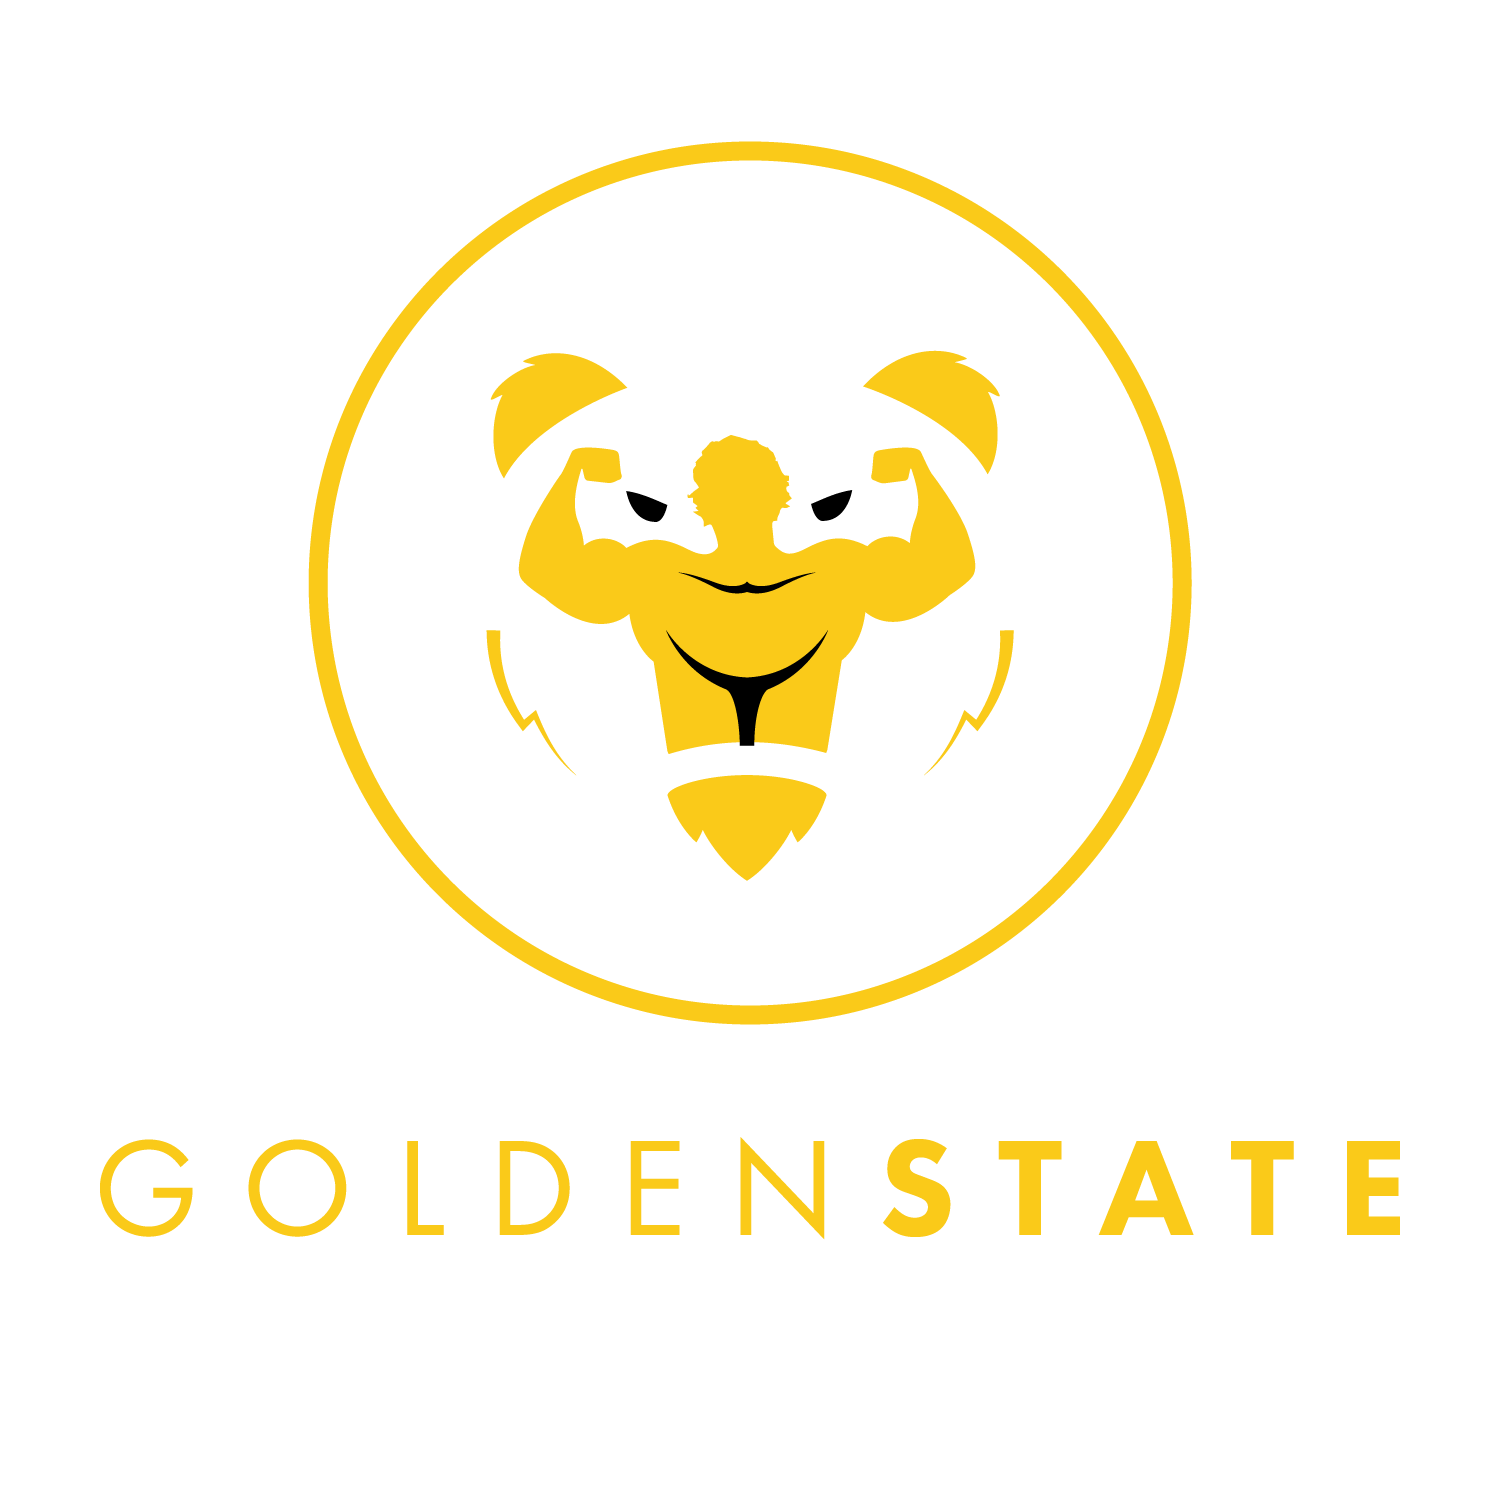 Golden State Fitness & Performance